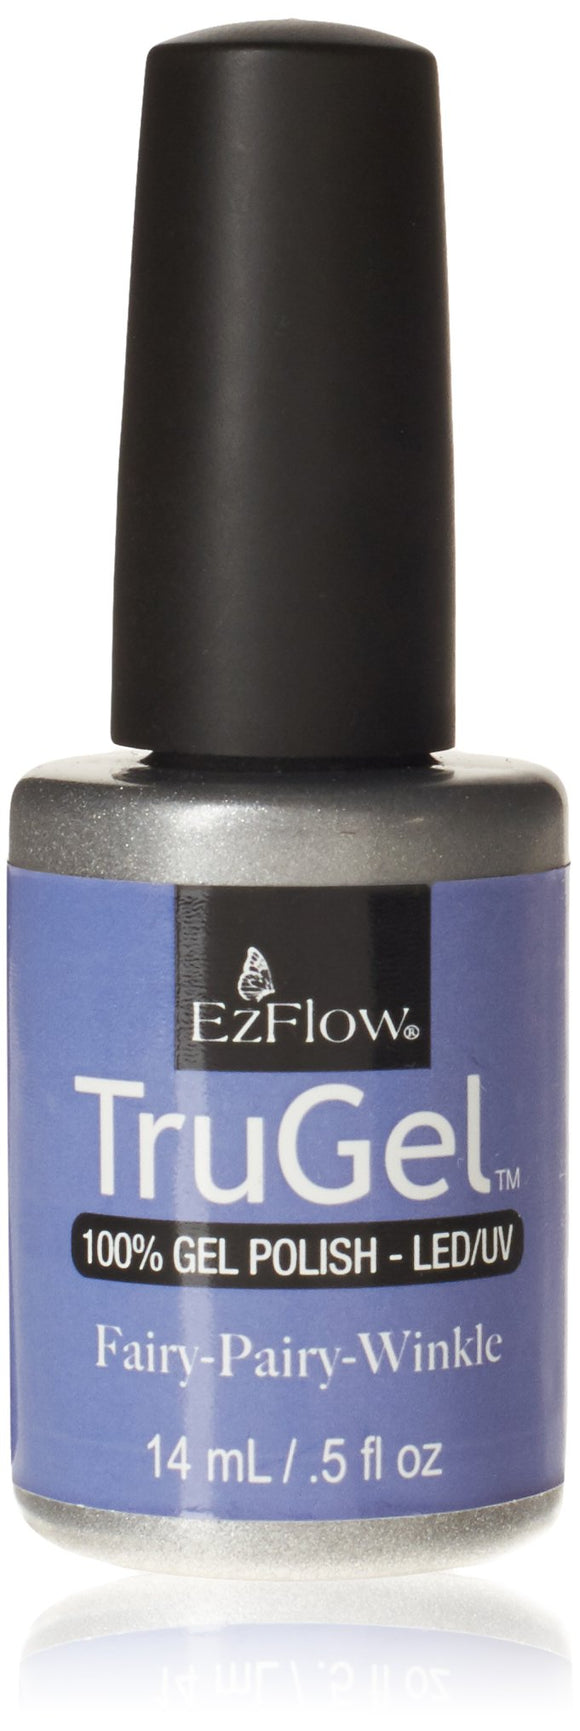 Ez Flow TruGel LED/UV Gel Polish - 14 mL (Fairy-Pairy-Winkle - EZTG42445)